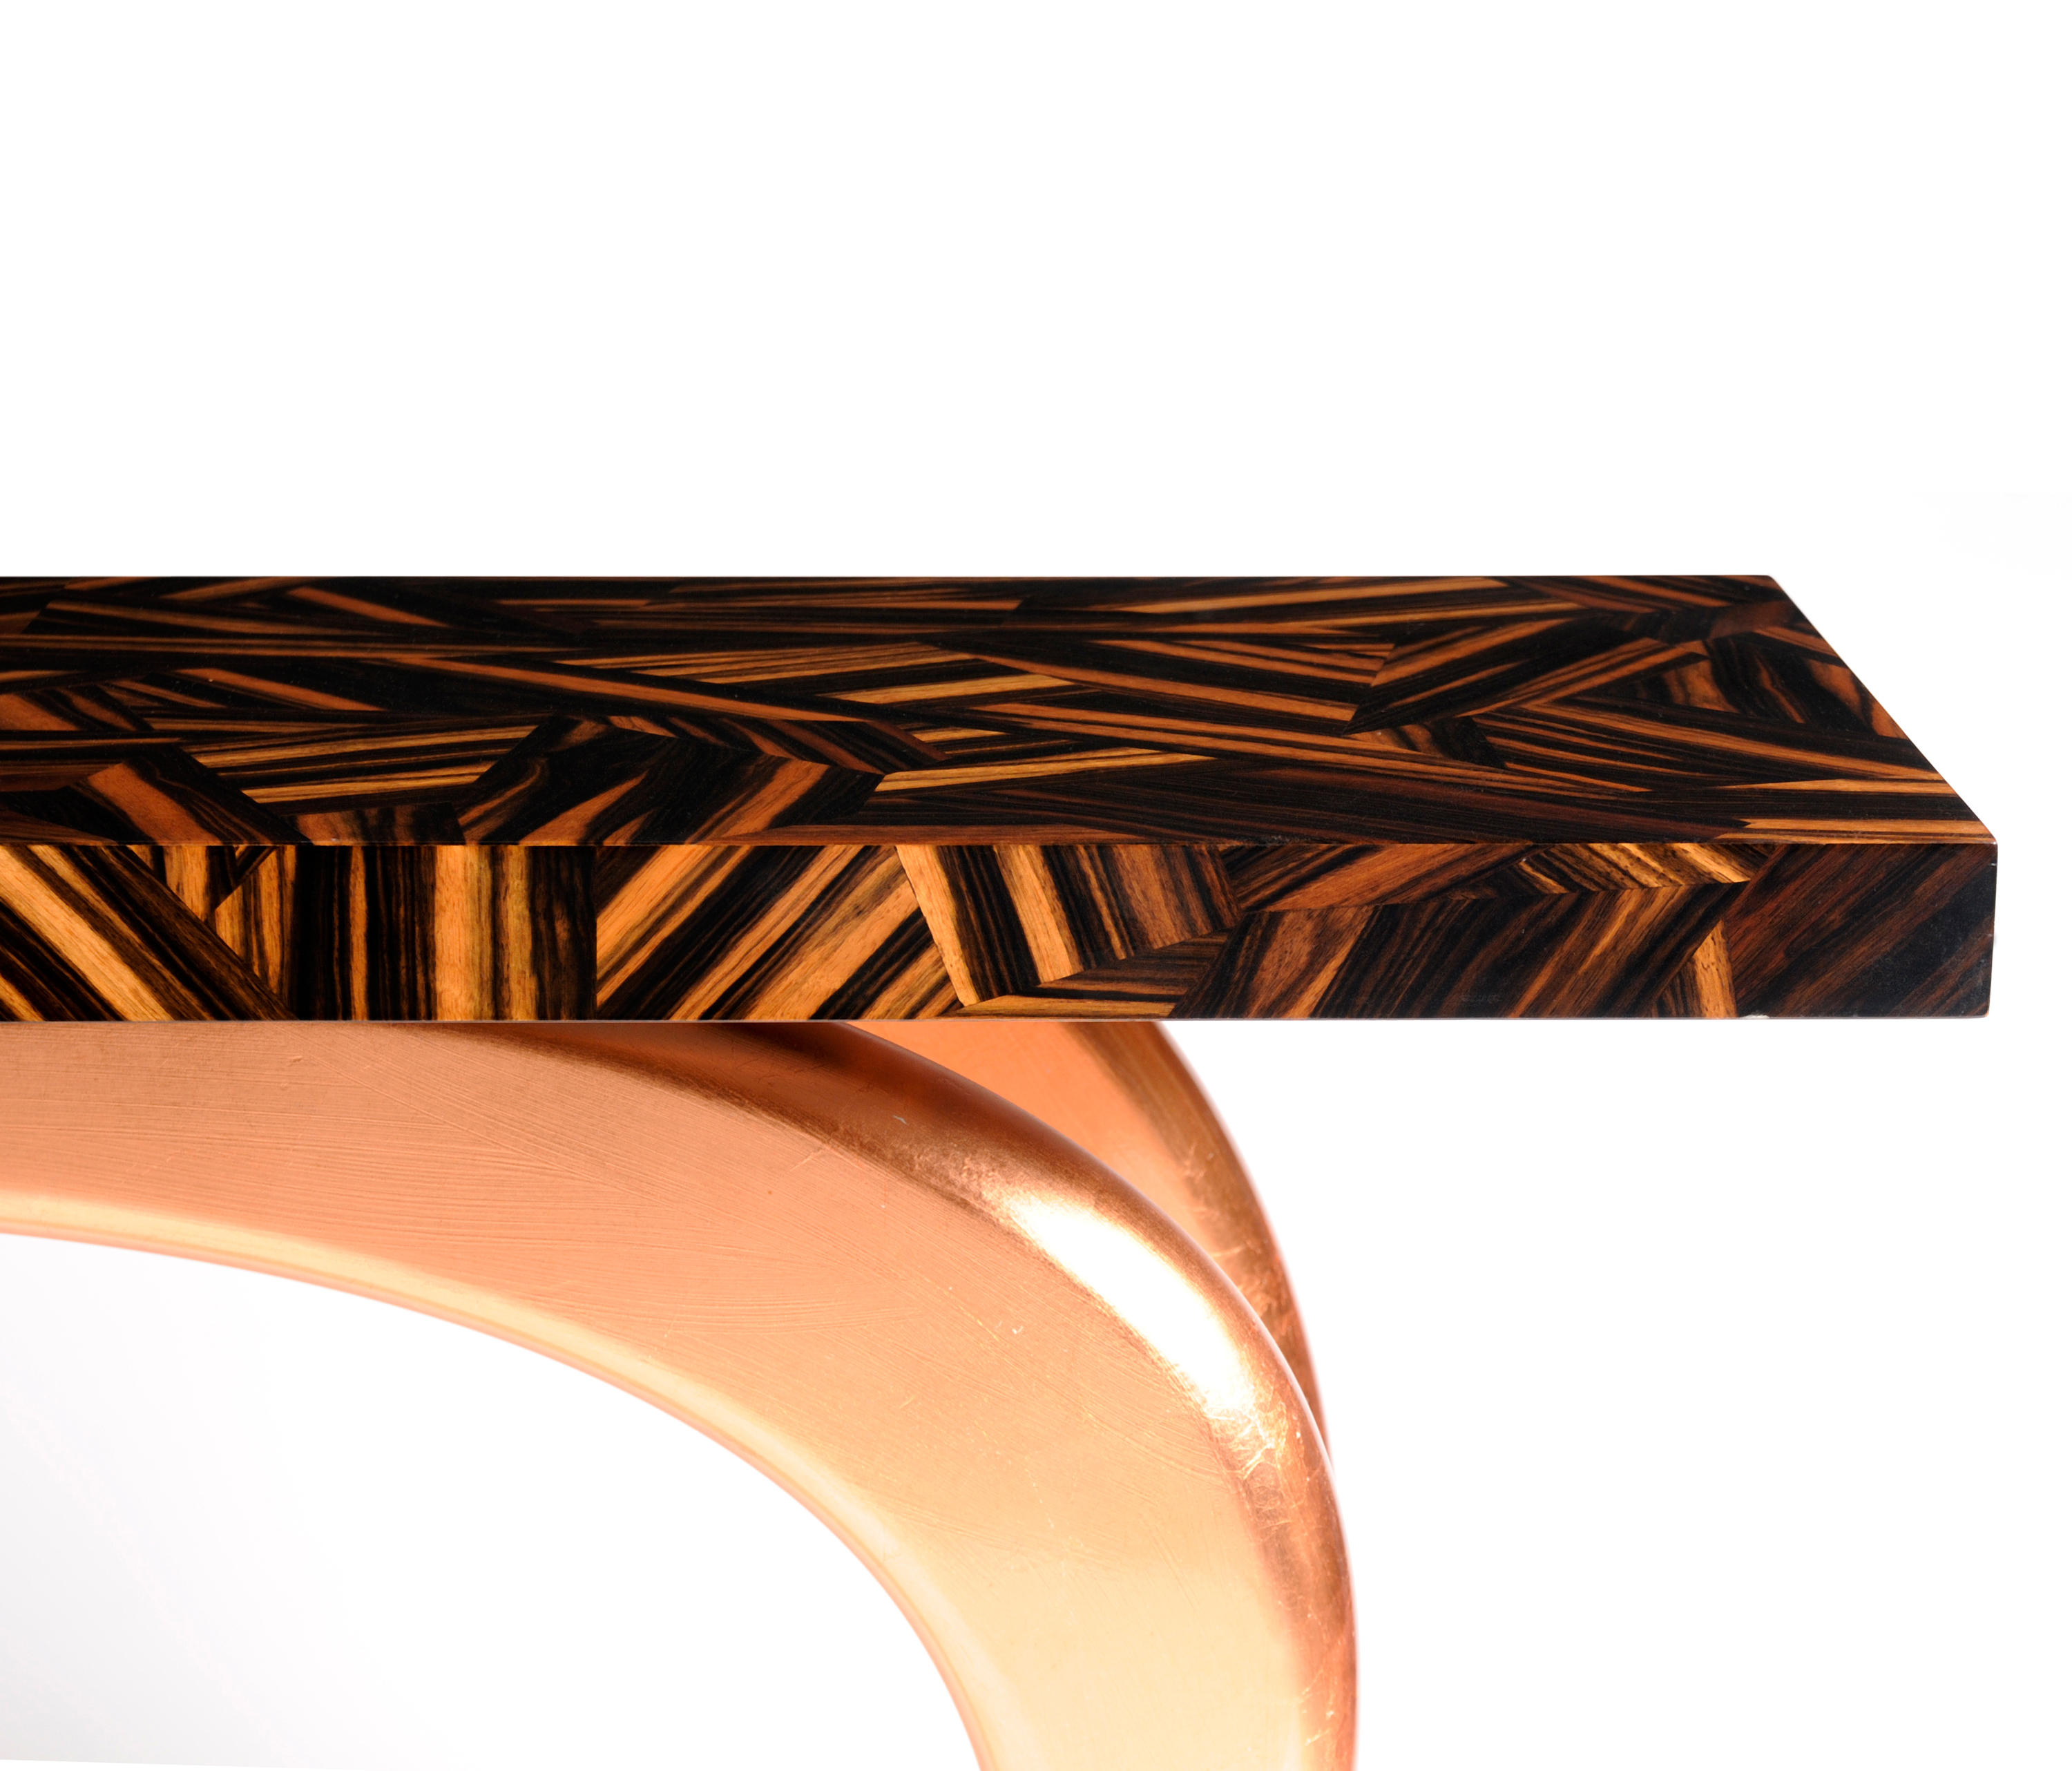 INFINITY CONSOLE Console tables from Boca do lobo